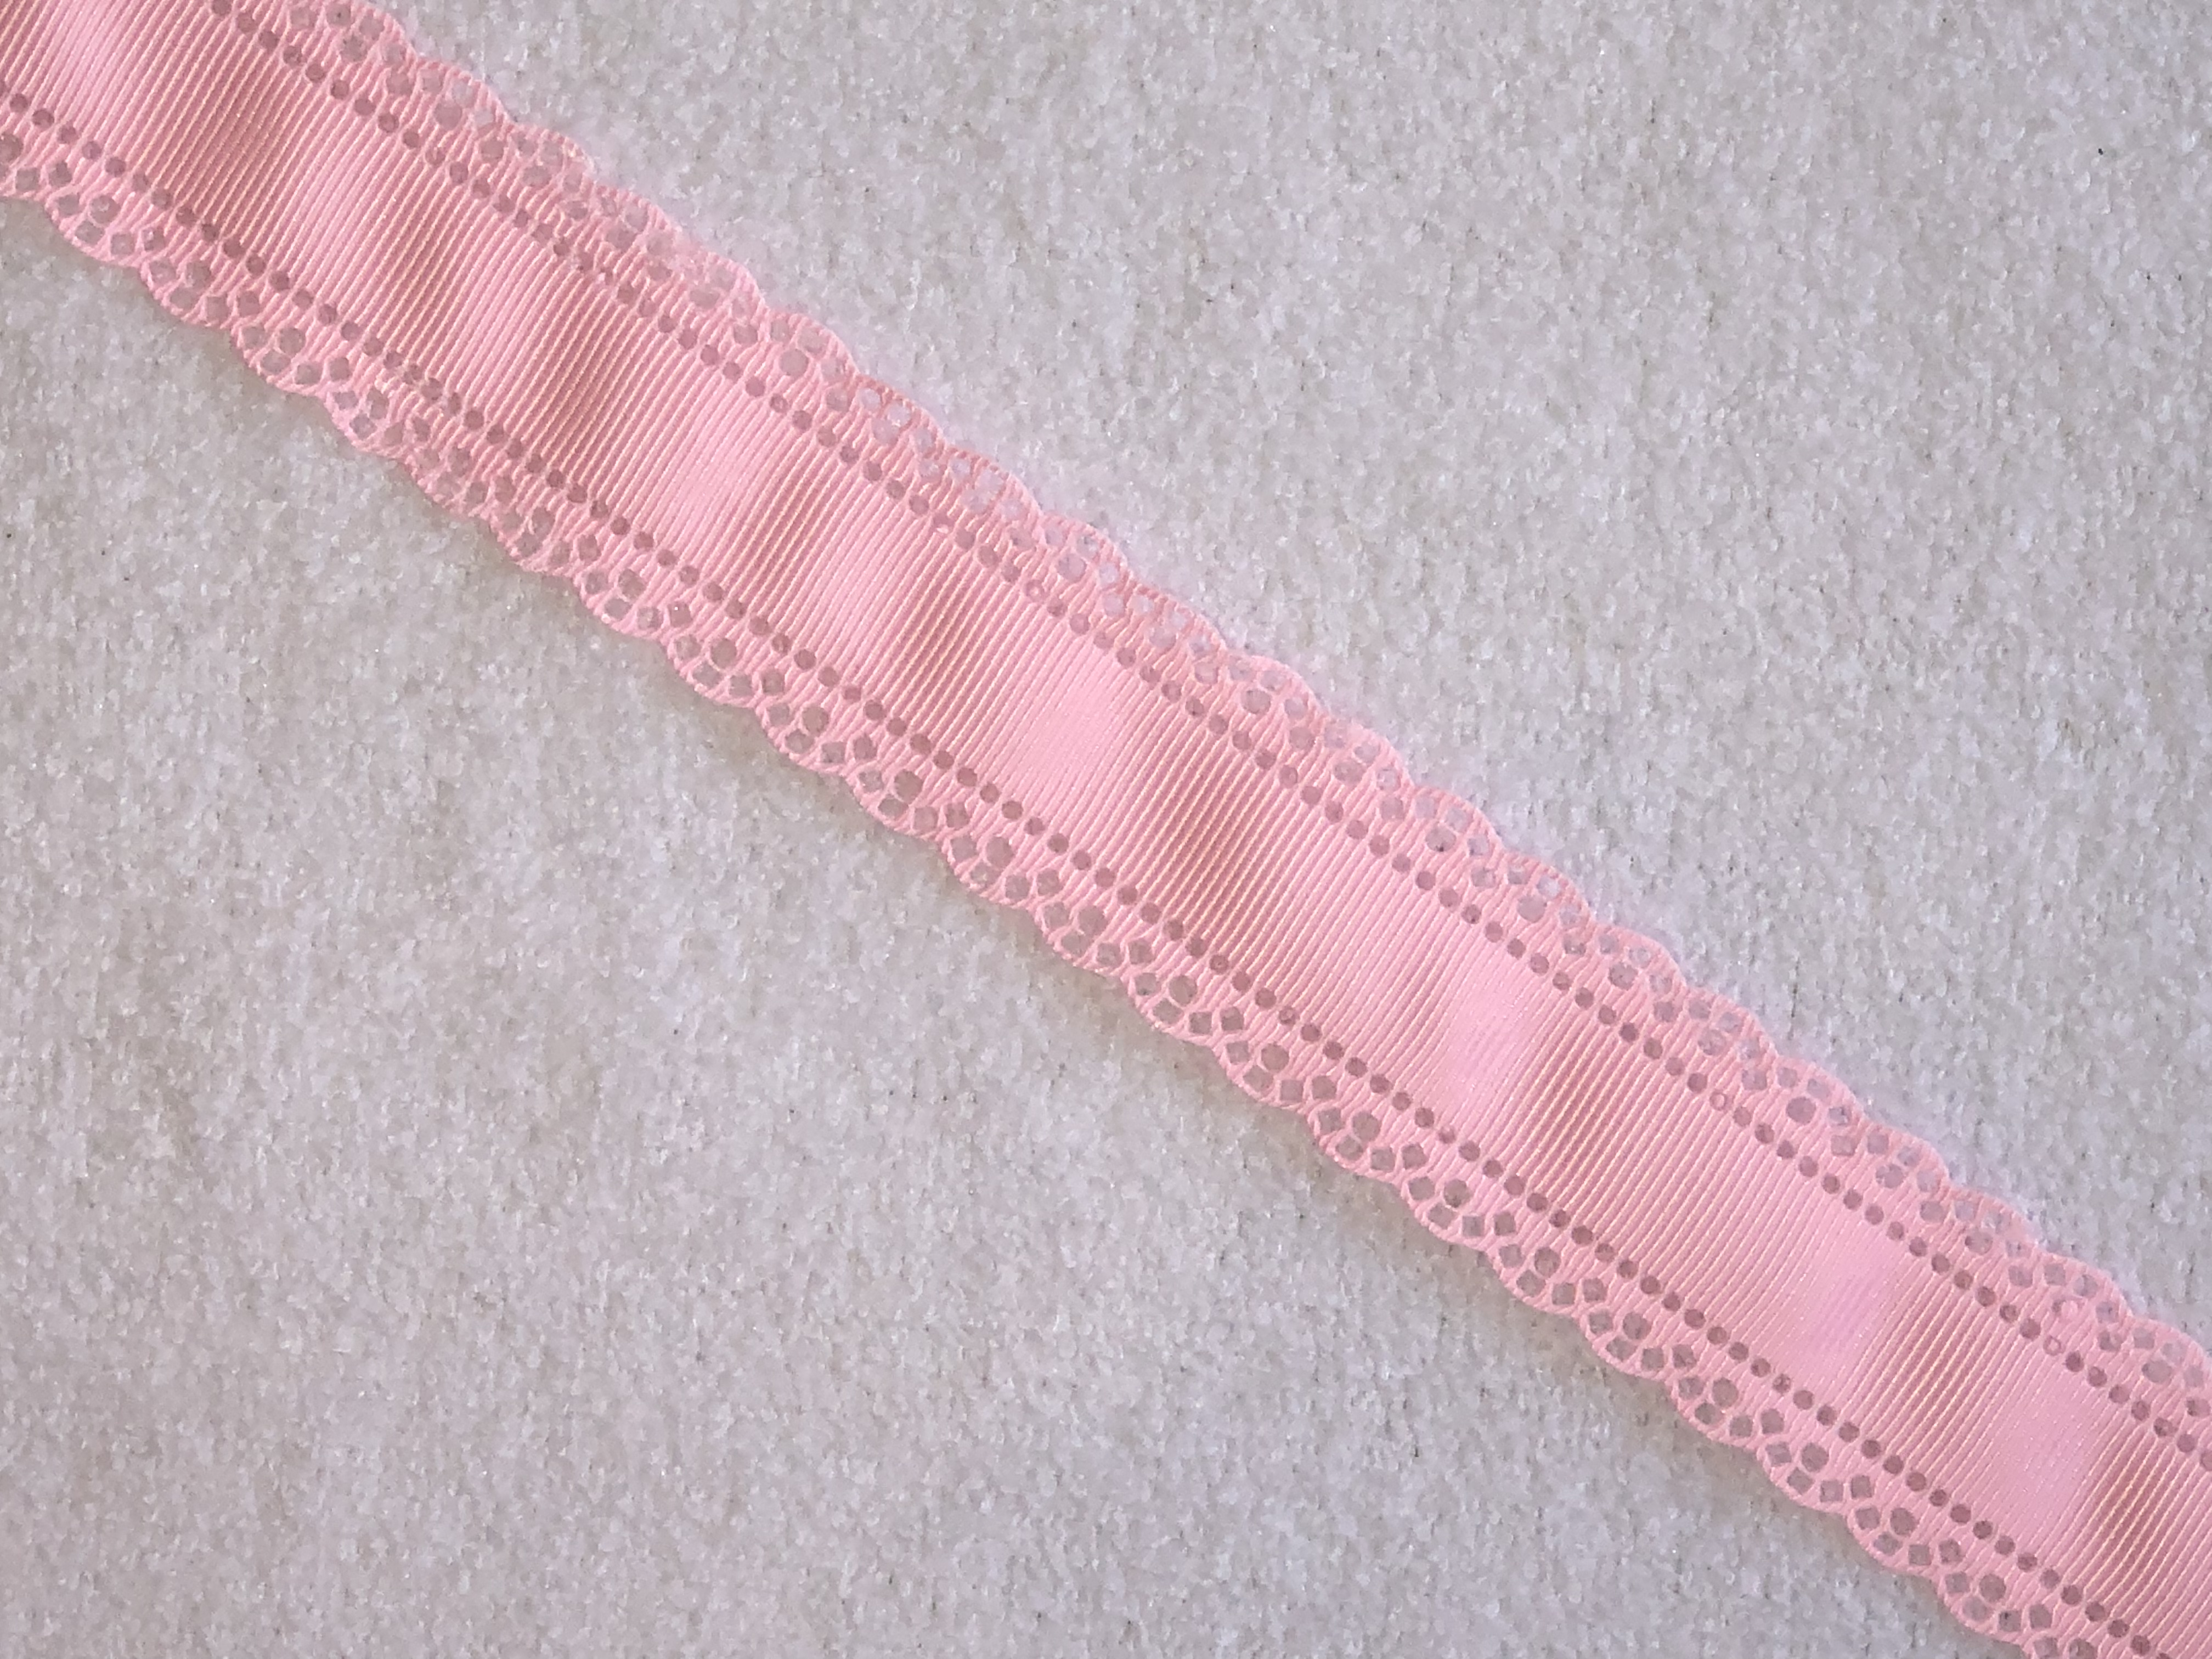 30mm Scallop Grosgrain Ribbon - Rose Pink x 1yd